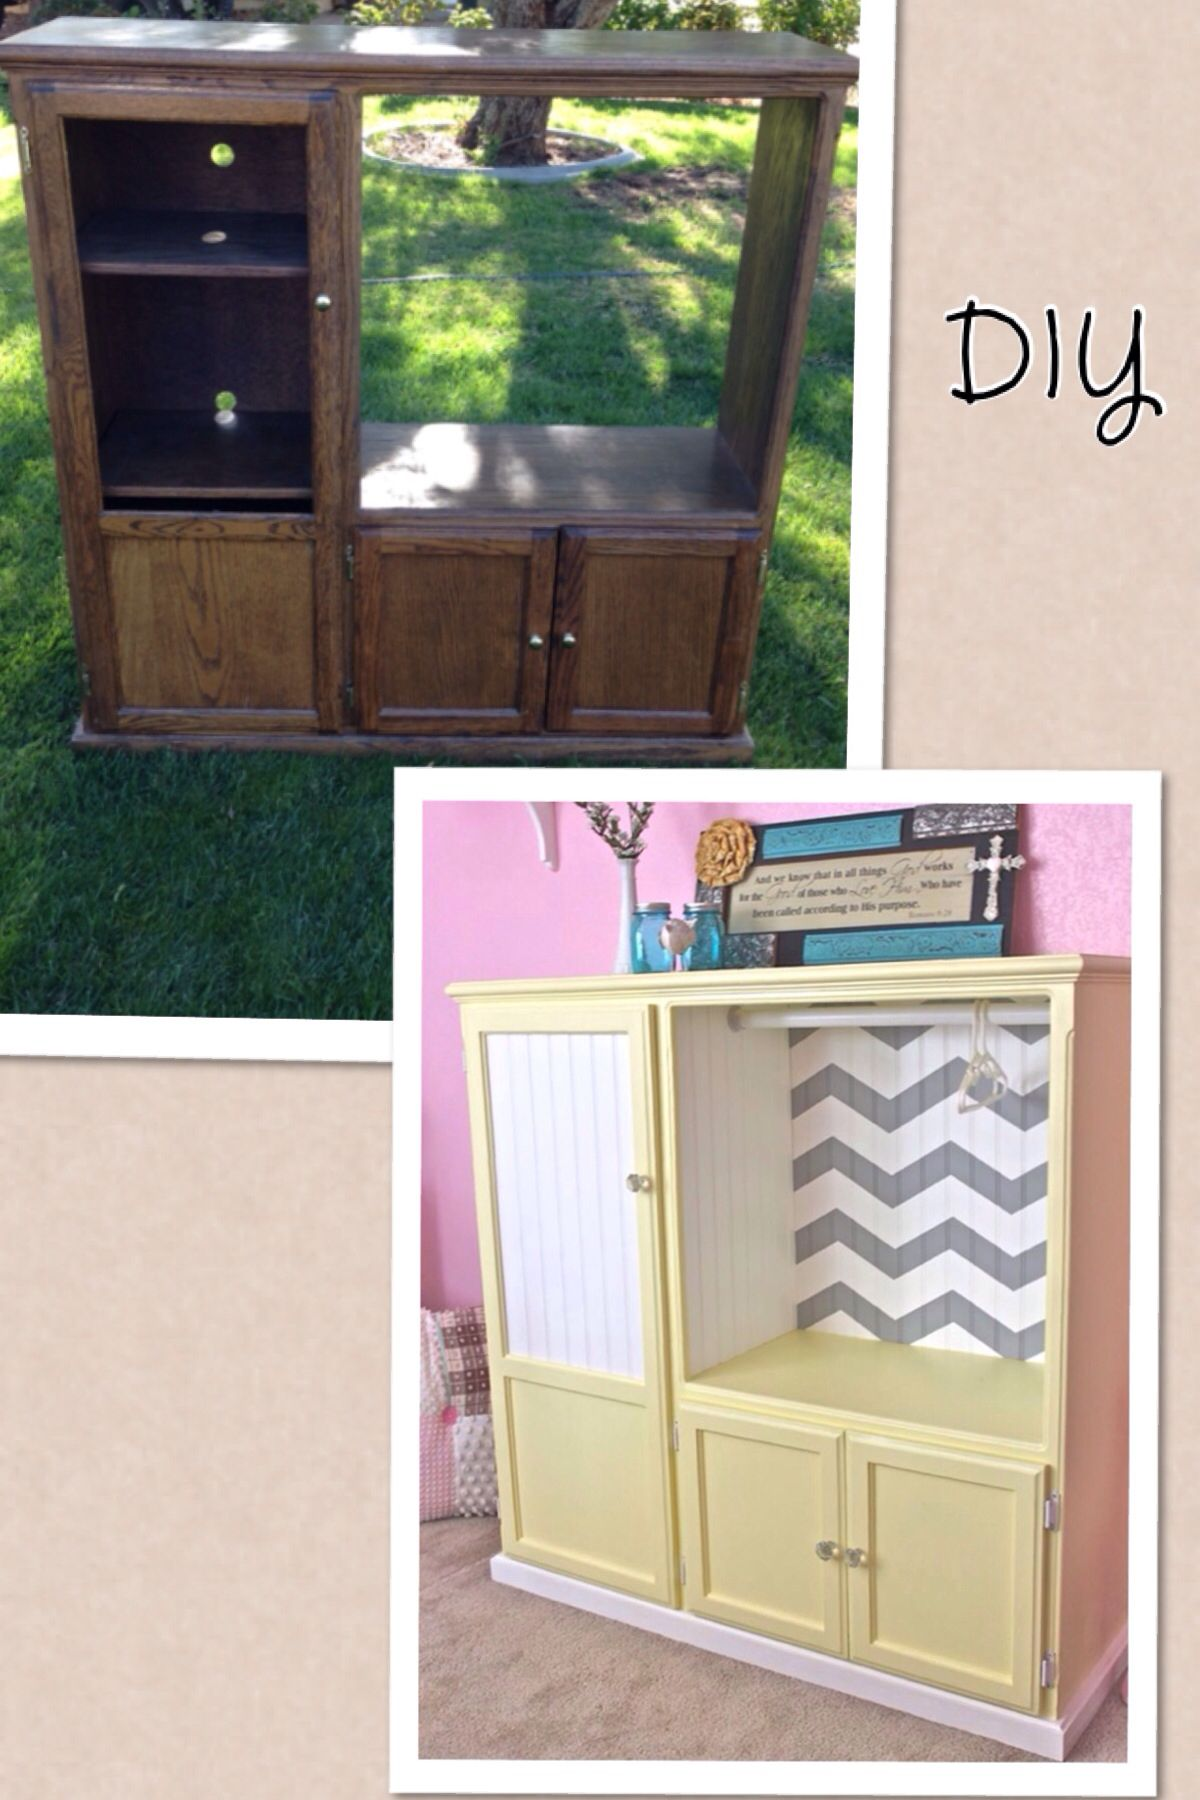 Diy Baby Armoire Out Of An Old Entertainment Center